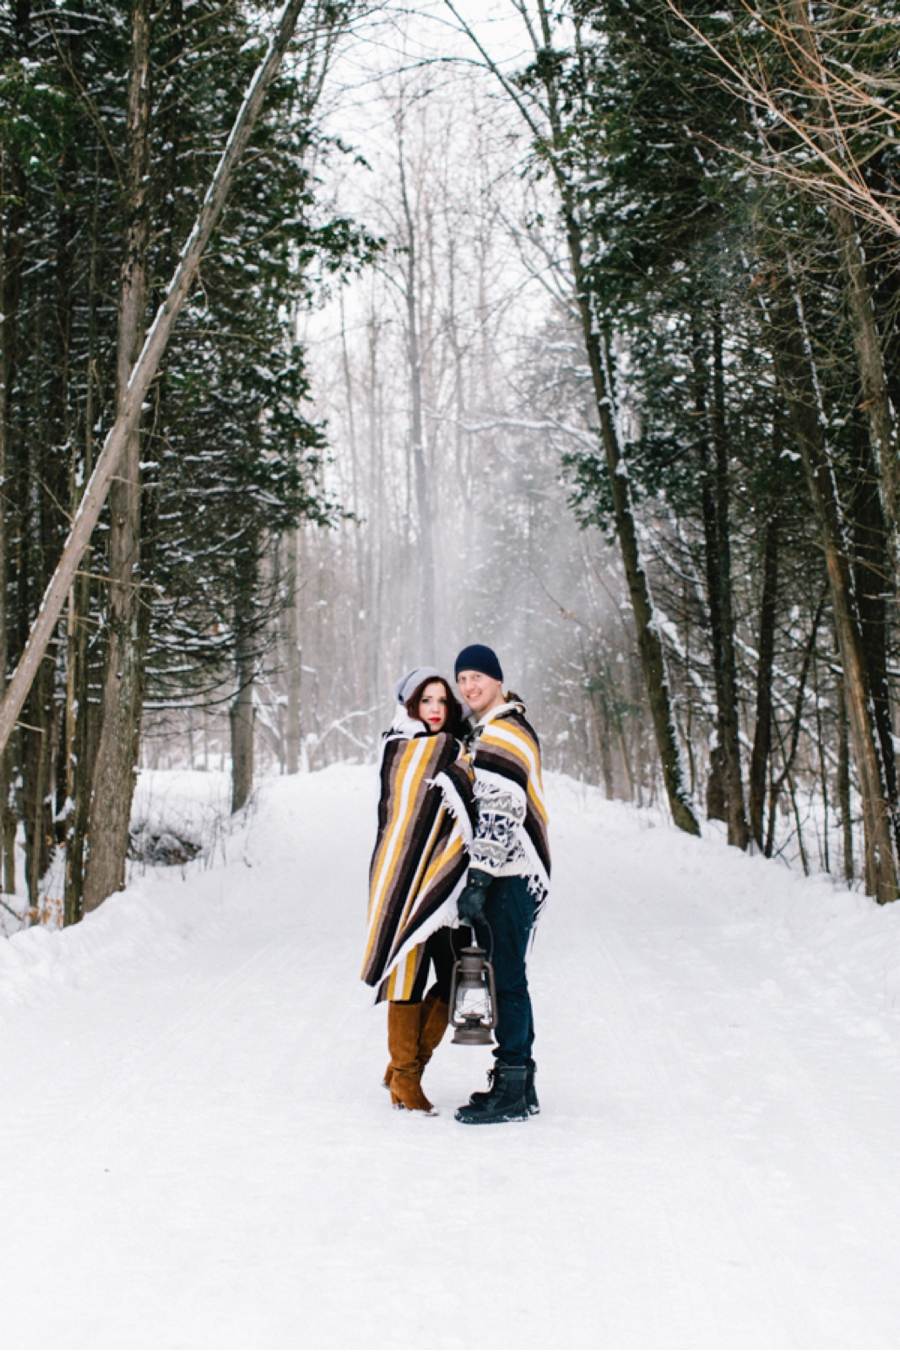 Snowy-Woodland-Engagement-Shoot